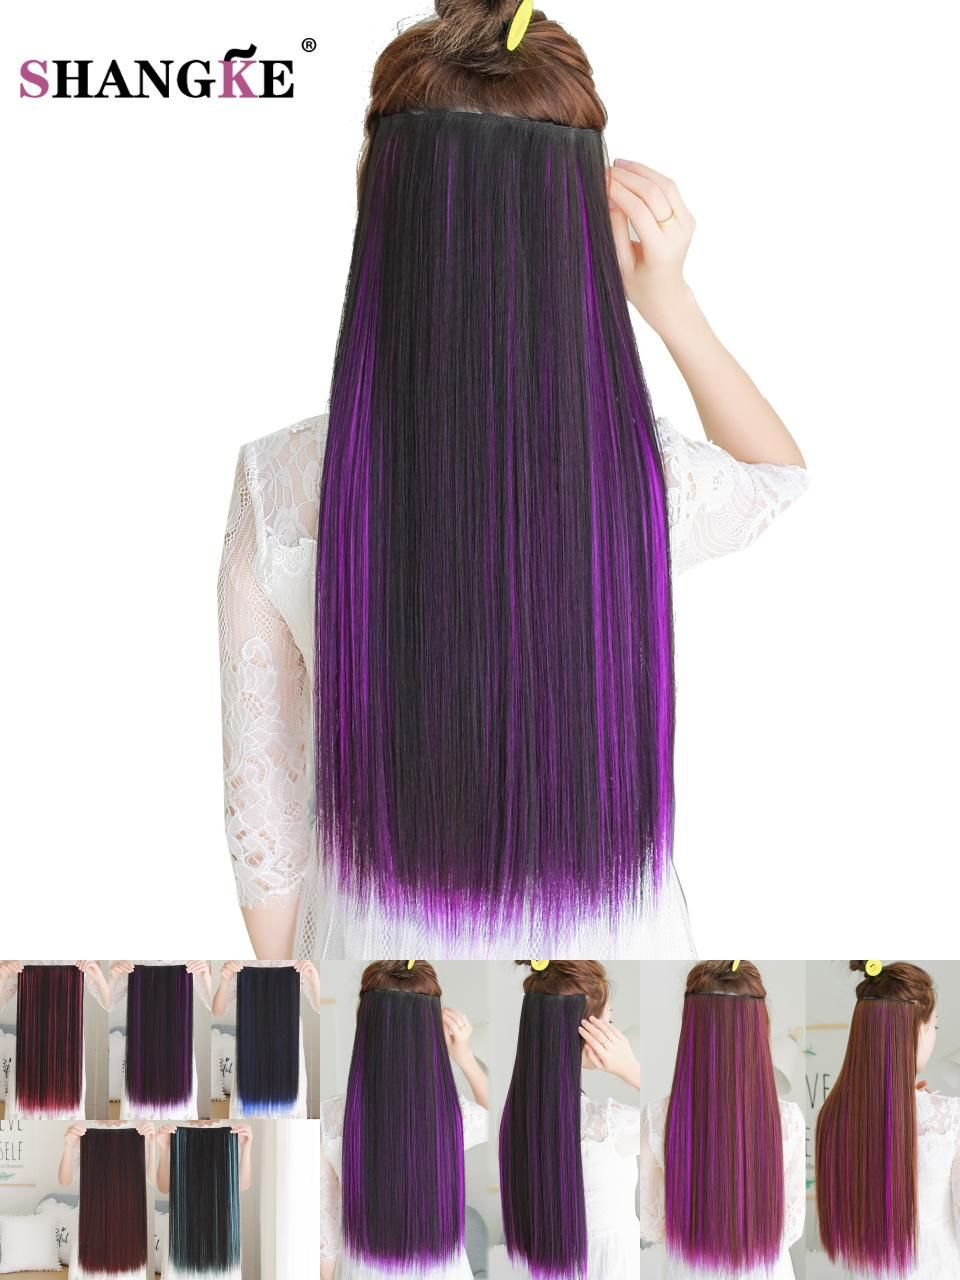 Visit To Buy Shangke 24long Colored Hair Extension 5 Clip In Hair